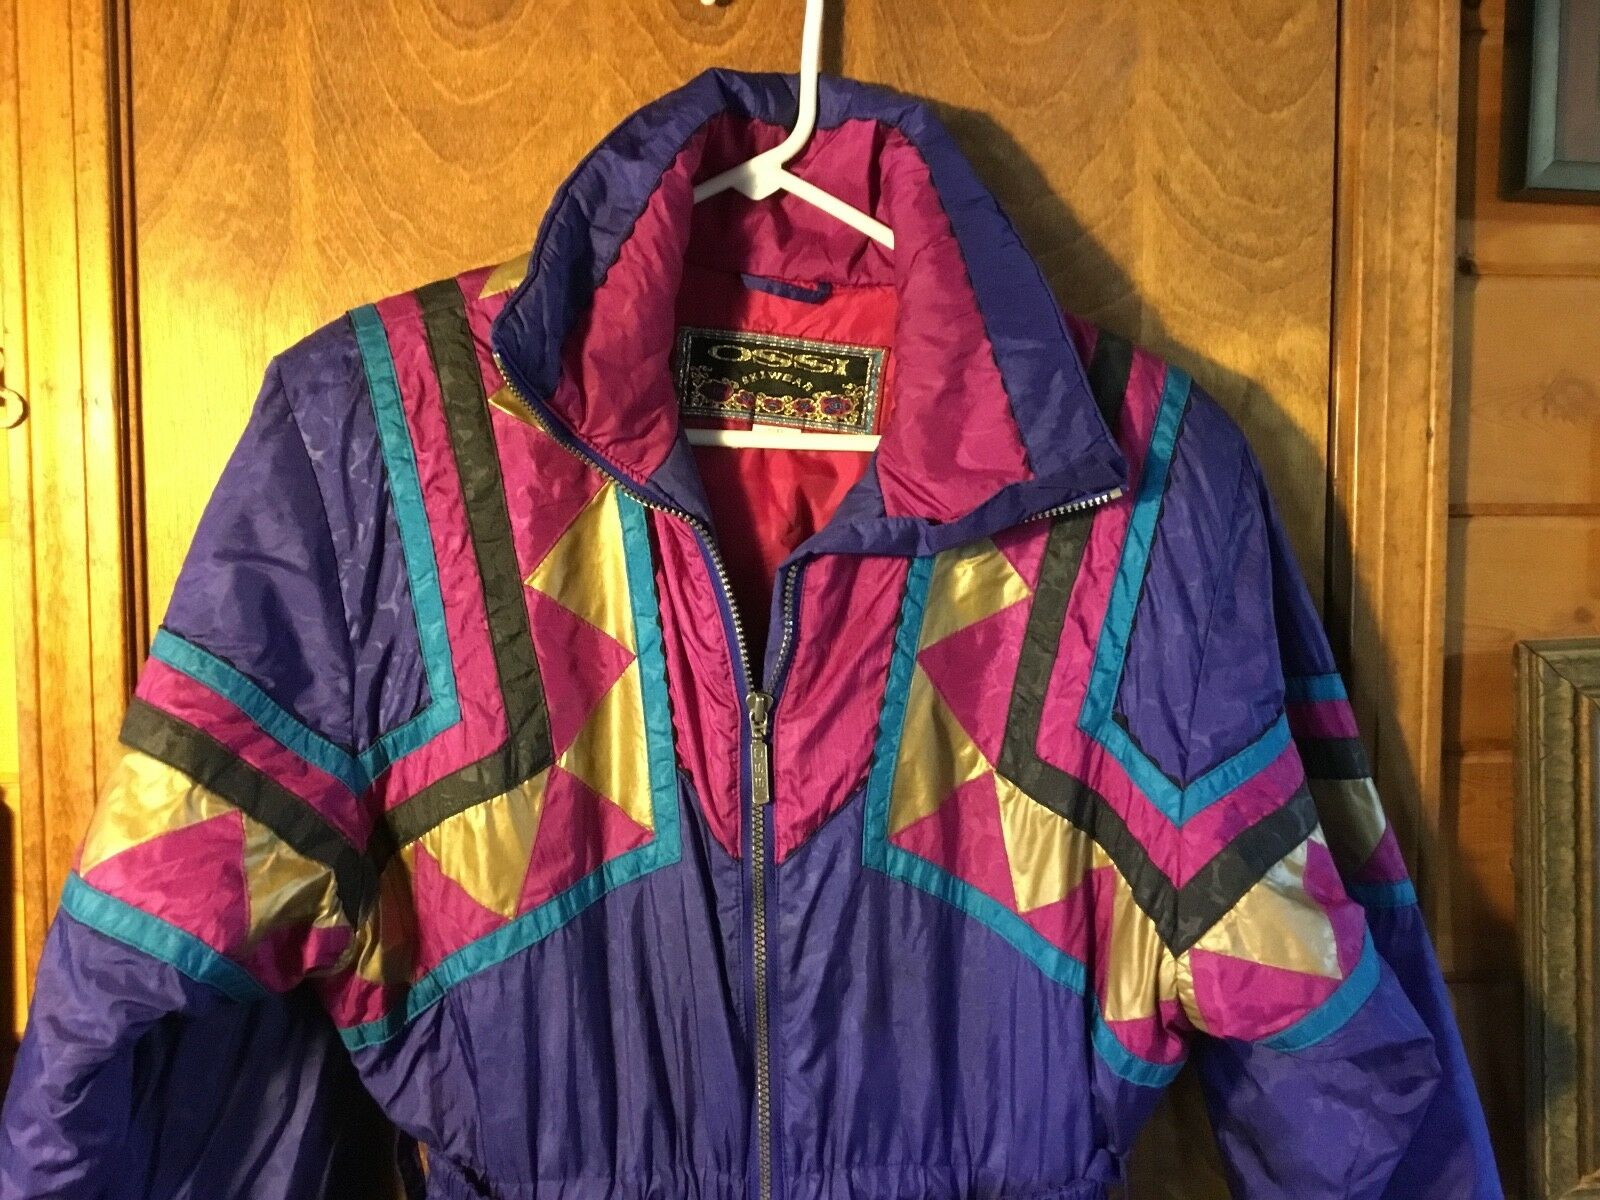 Vintage Ossi skiwear womens sz 8 one piece ski suit purple gold 80s-90s